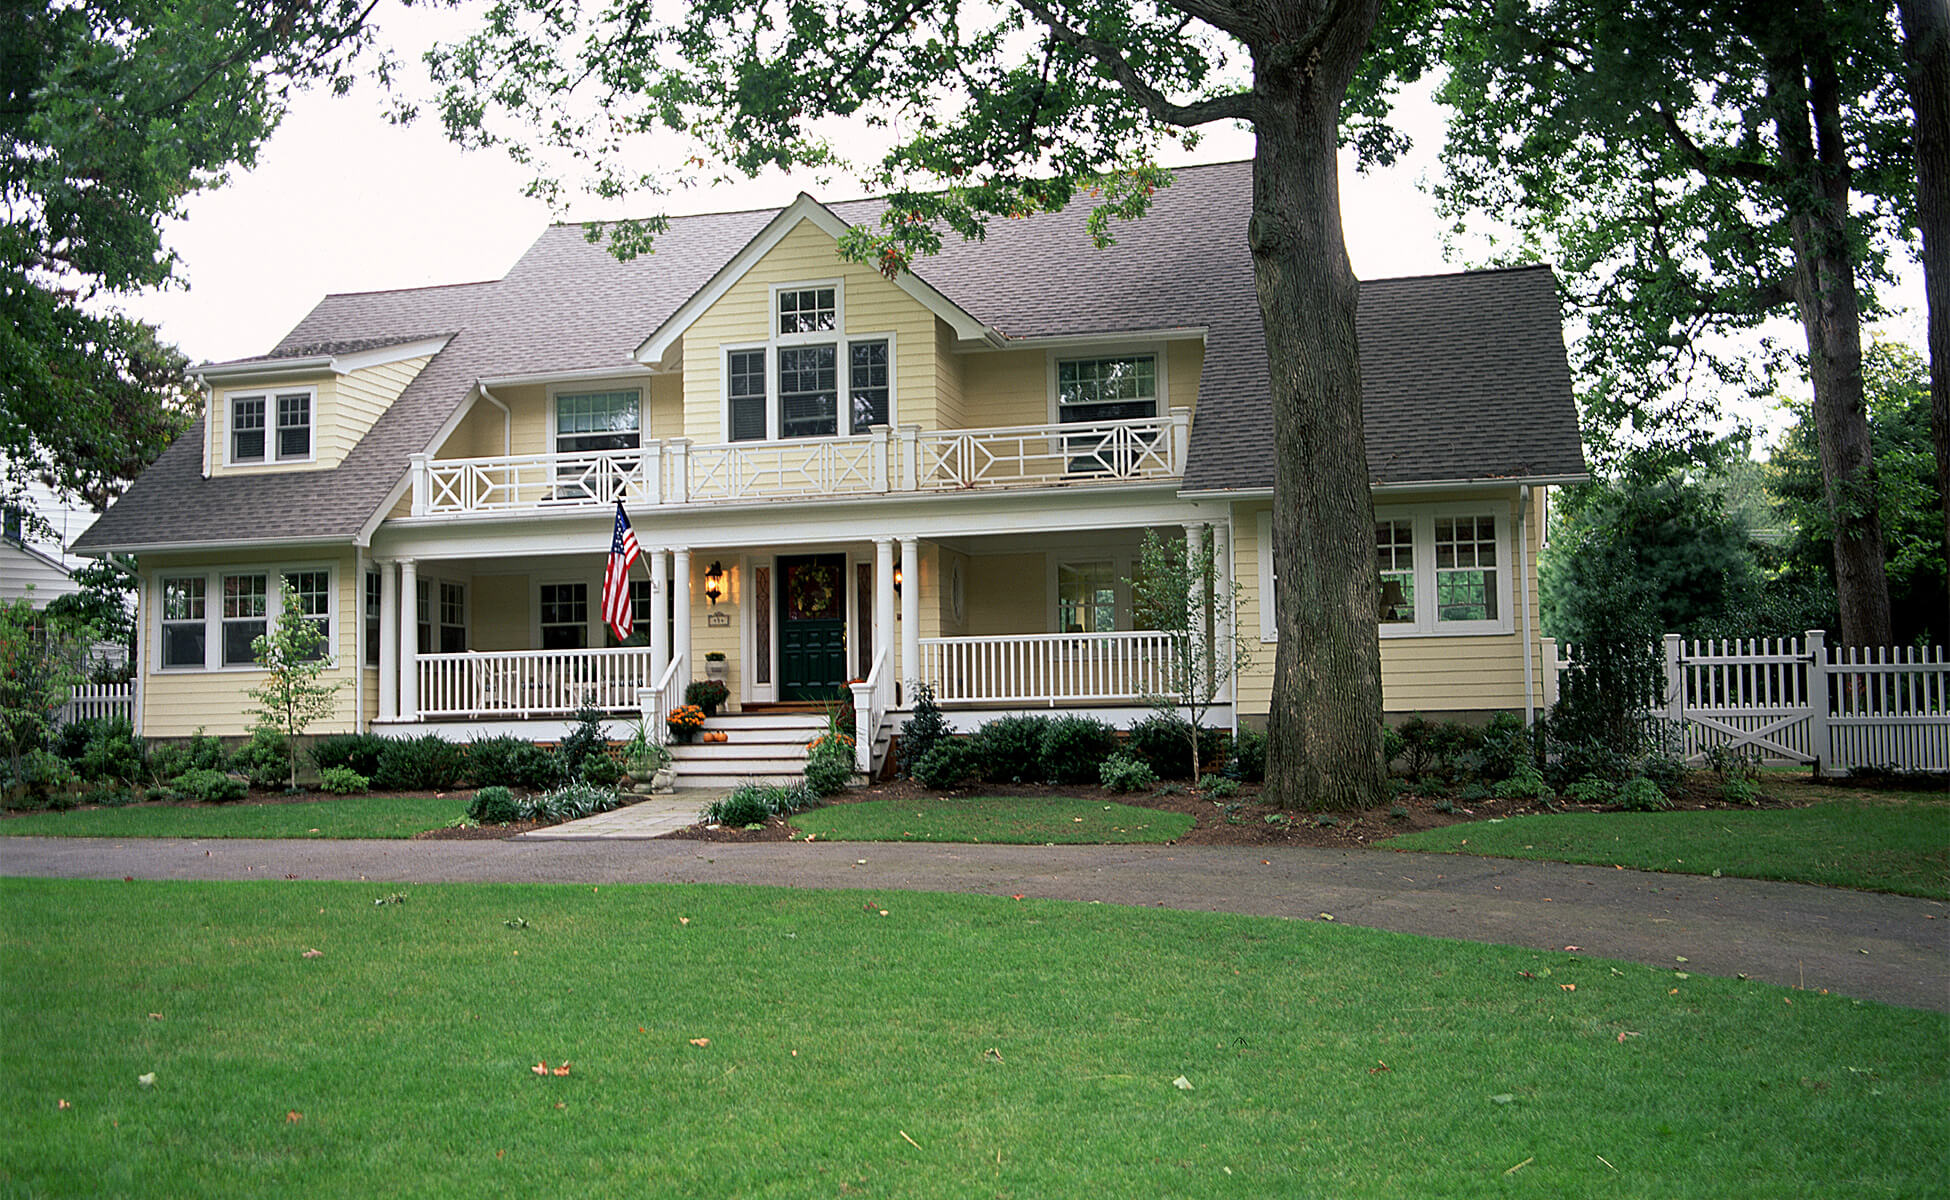 home_page_9